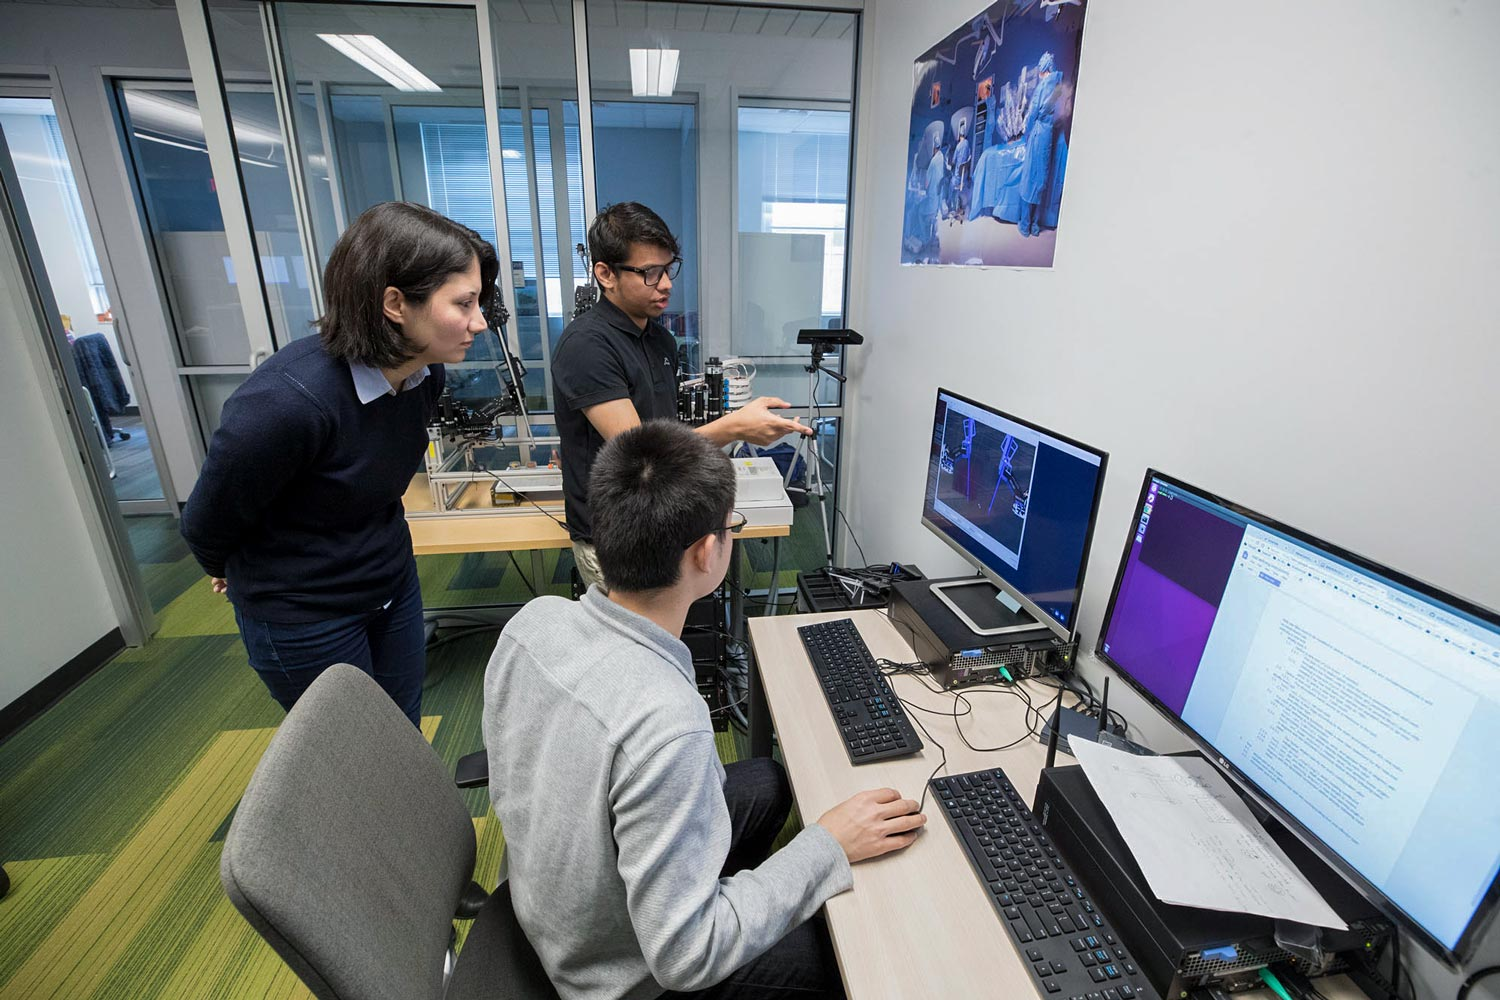 Alemzadeh works with students Samin Yaser, rear, and Yonming Qin. The team hopes to provide more realistic training simulations of robotic surgery.